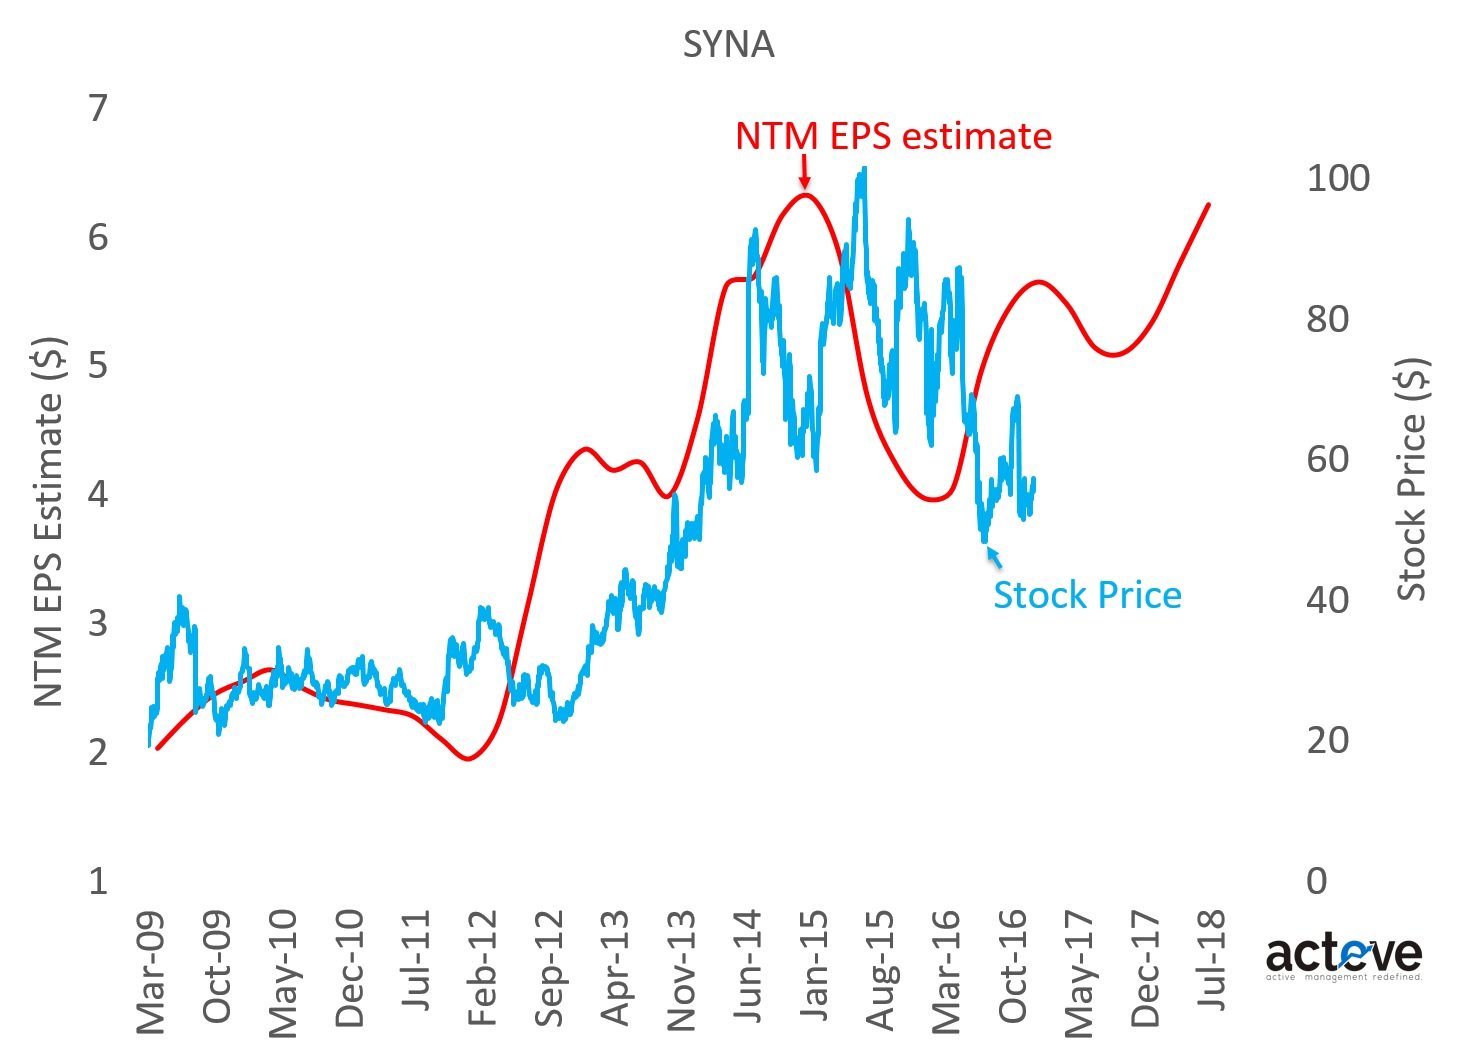 SYNA stock vs. NTM EPS